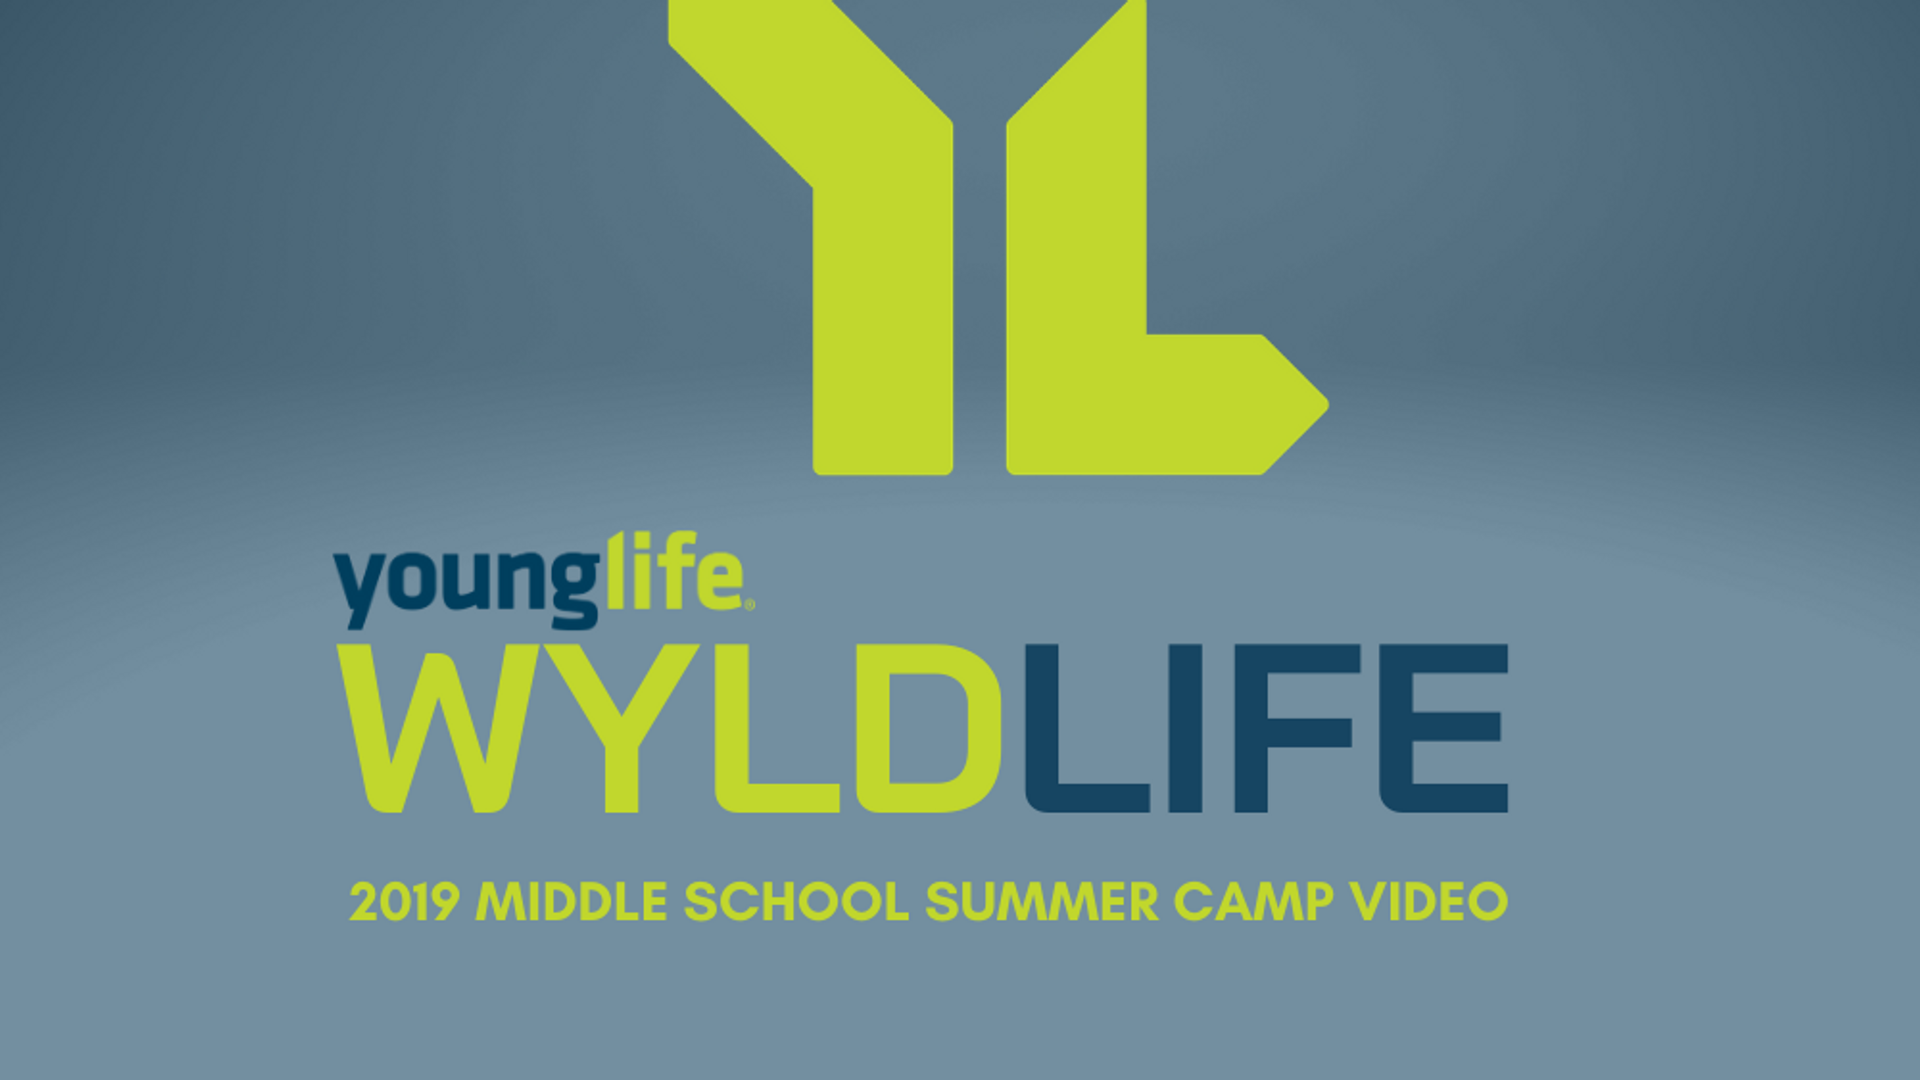 2019 Wyldlife Middle School Summer Camp Full Video